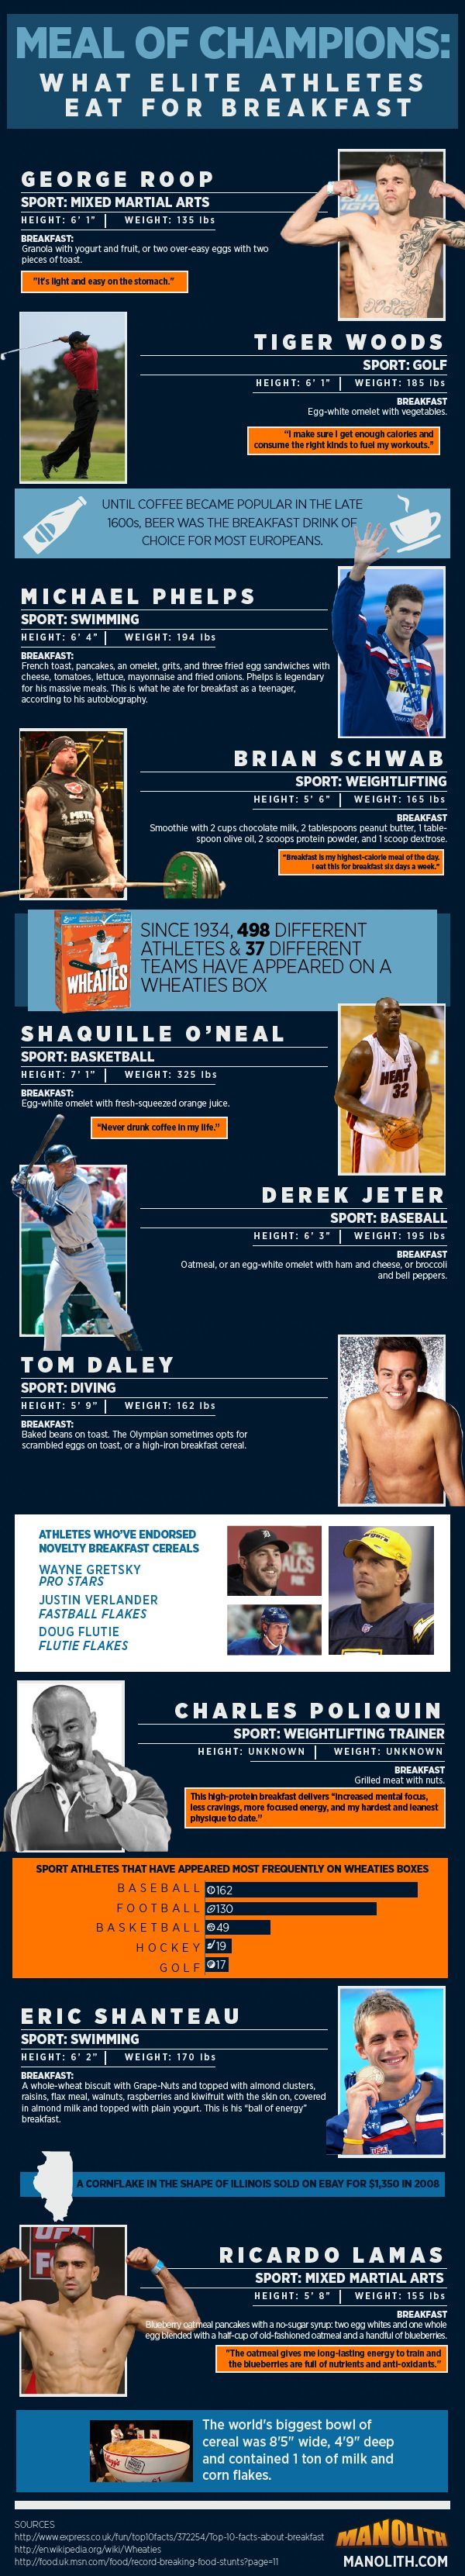 You won't believe what Michael Phelps can pack away at breakfast time! Meal of Champions: What Athletes Eat for Breakfast #infographic